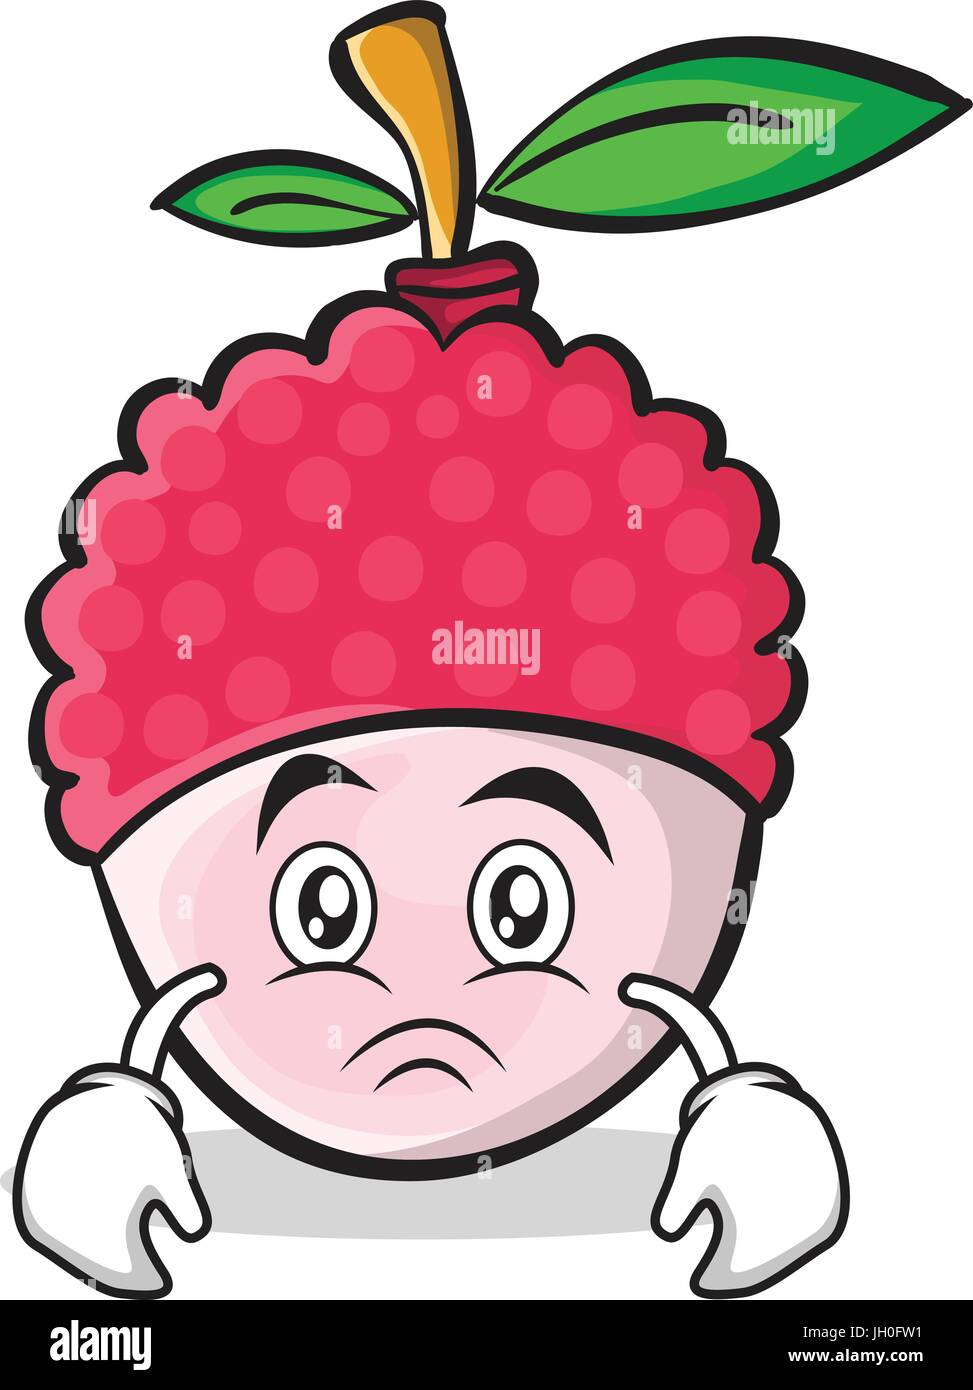 Sad face lychee cartoon character style stock vector art sad face lychee cartoon character style voltagebd Images